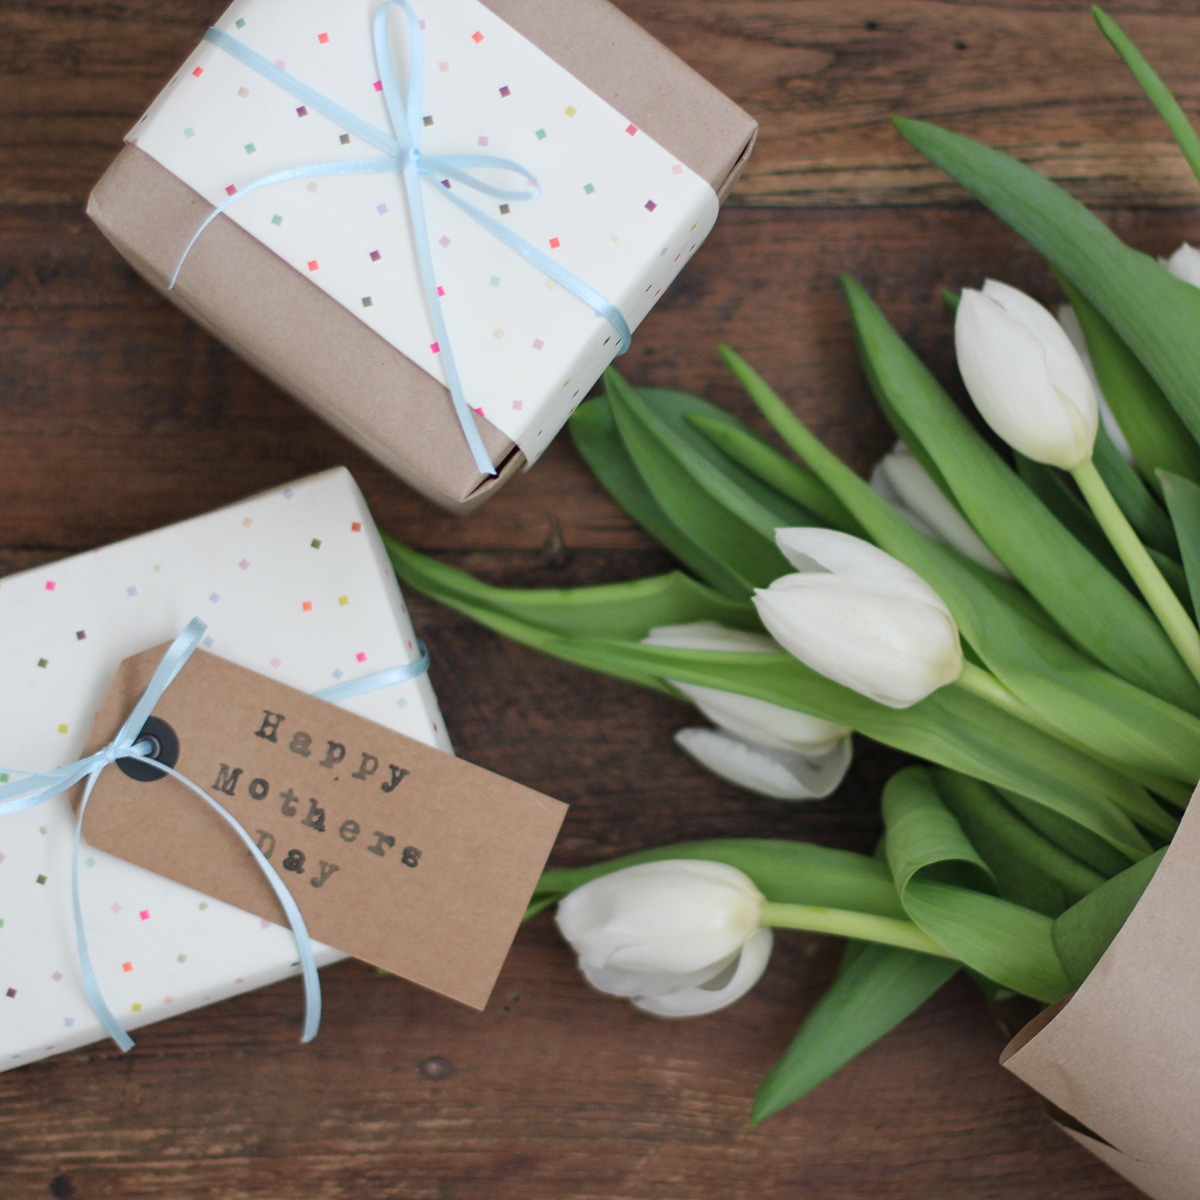 Mother's Day gifts and flowers Getty